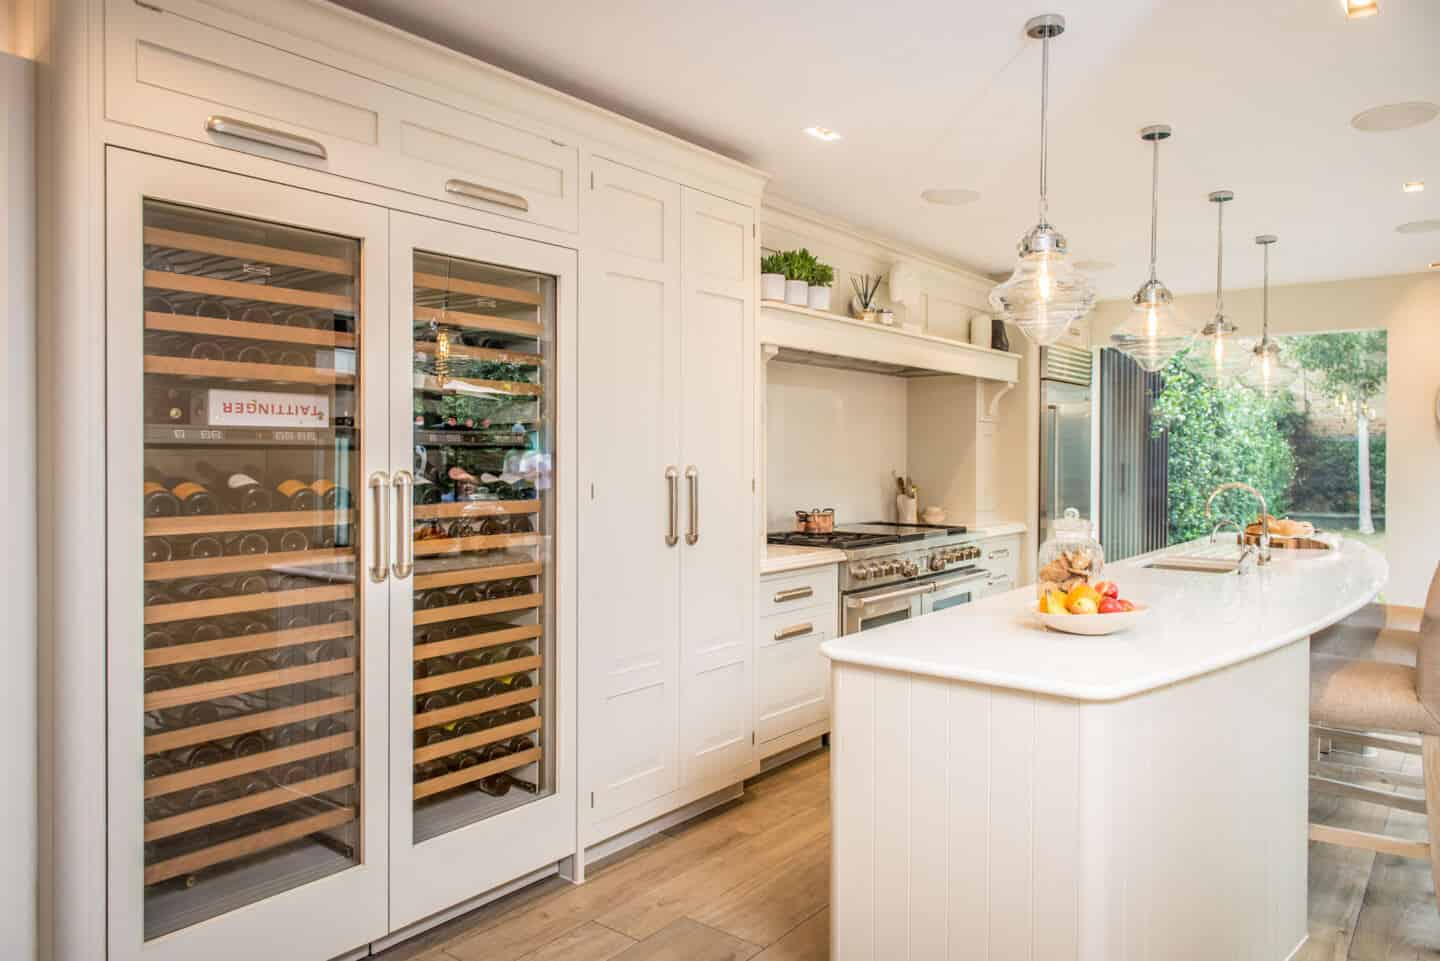 How to get your dream kitchen on a budget. Pre-Loved Mark Wilkinson Kitchen From Used Kitchen Exchange